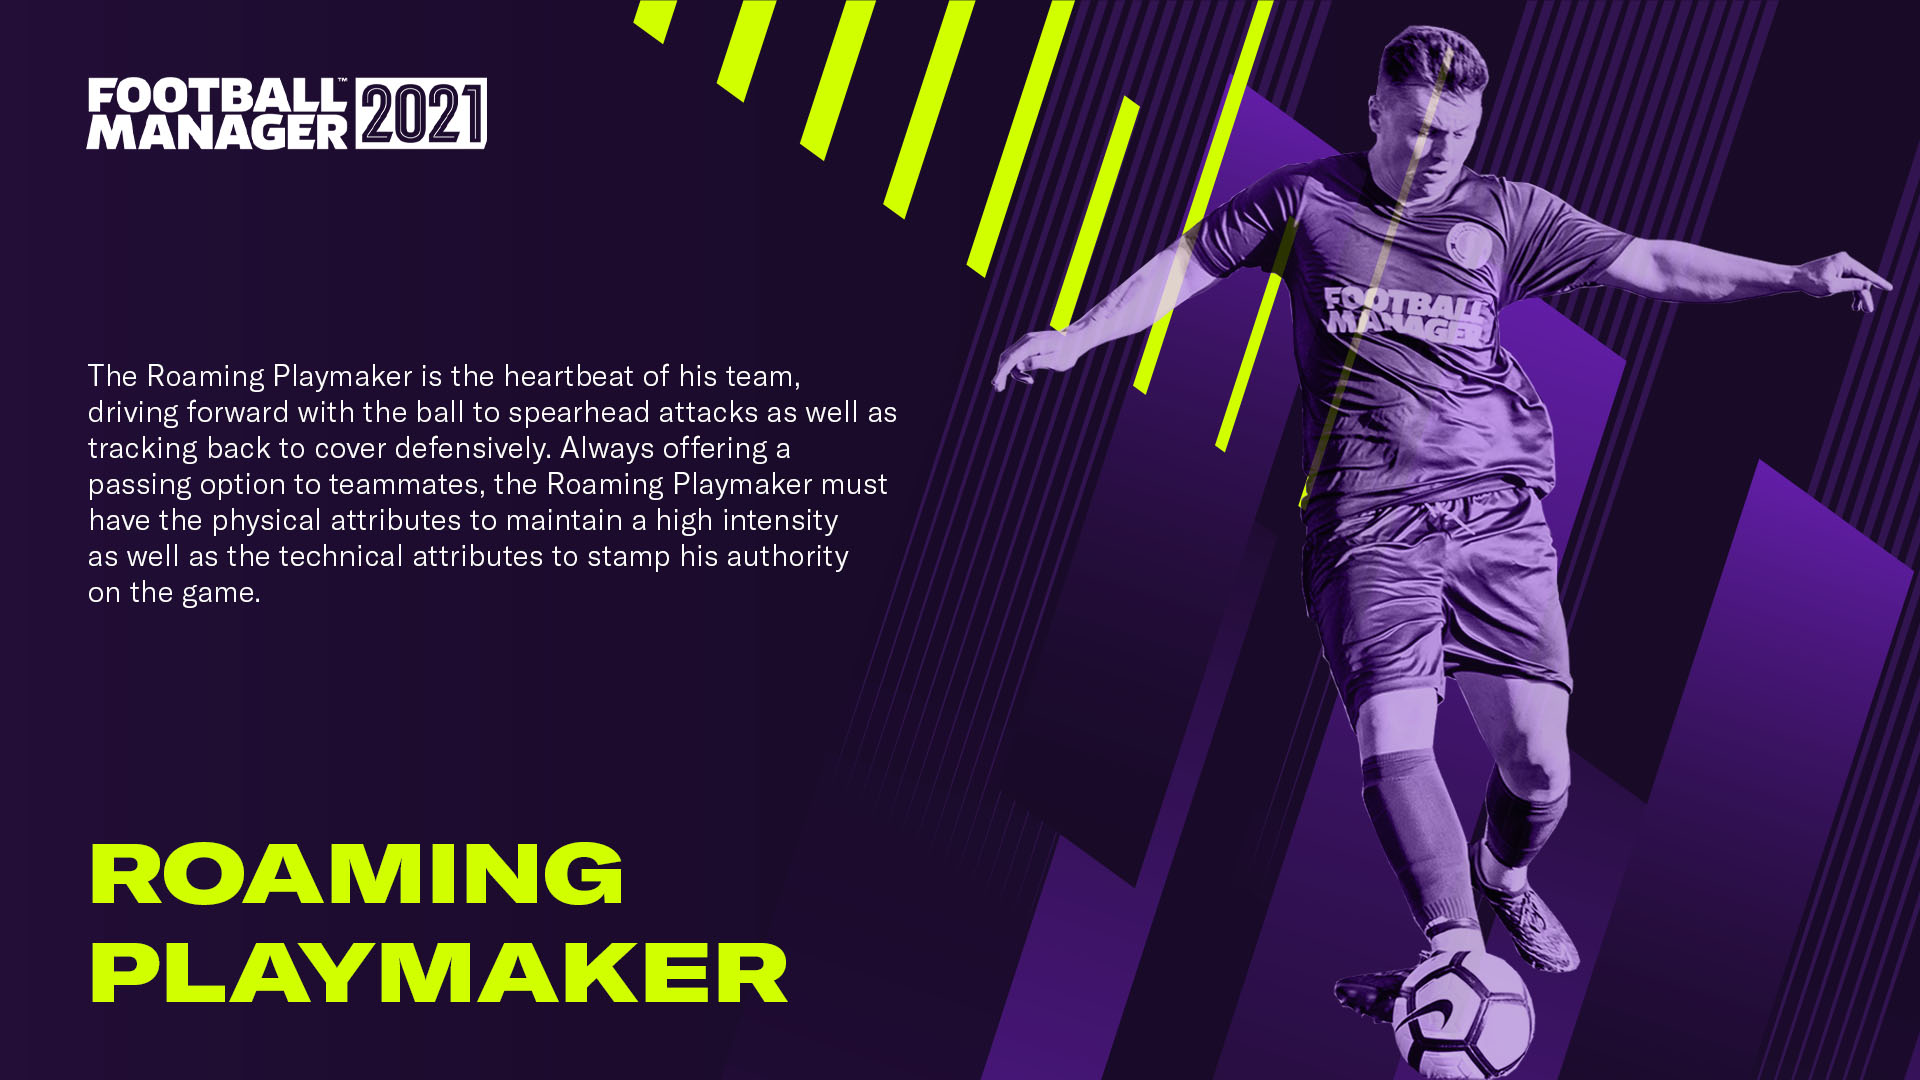 Roaming Playmaker Football Manager